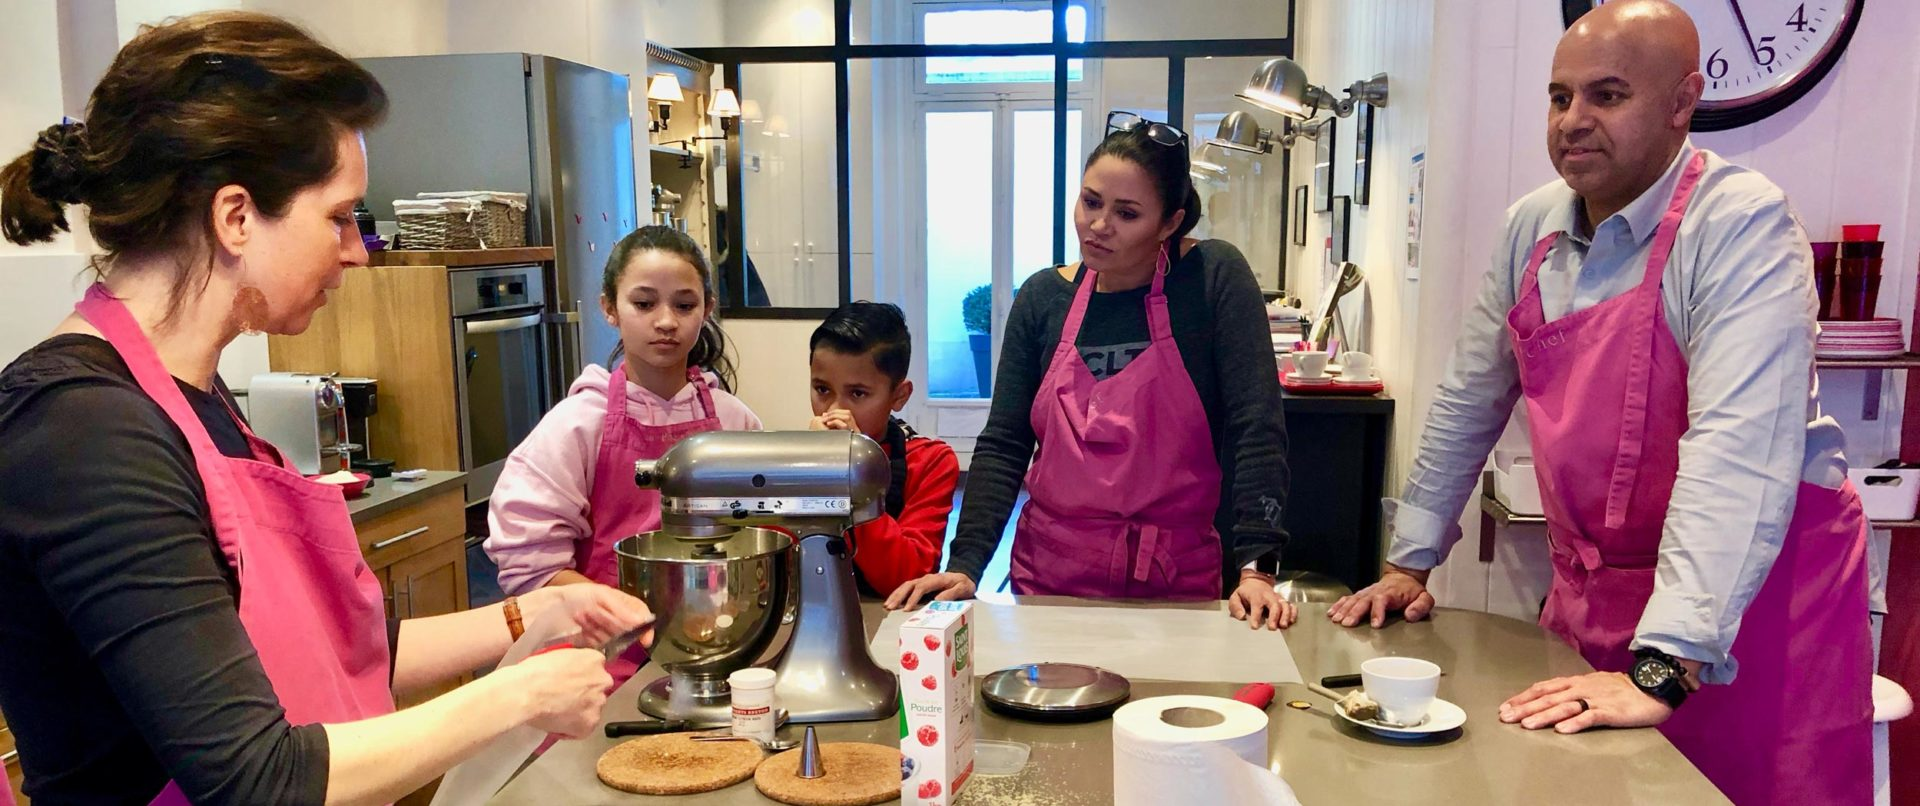 french-pastry-class-family-experience-private